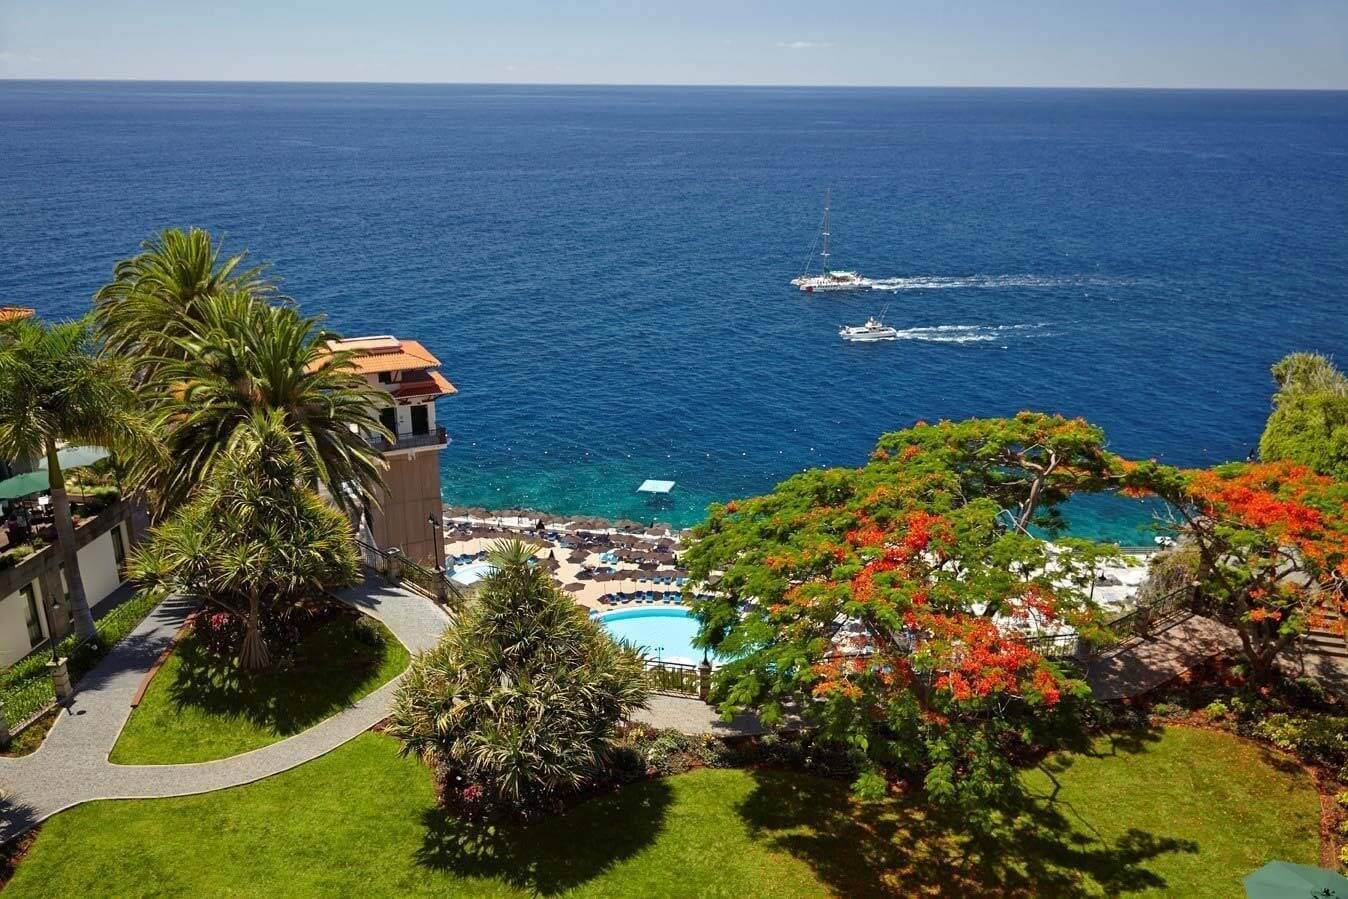 Hotel The Cliff Bay - Madeira Island - Overview